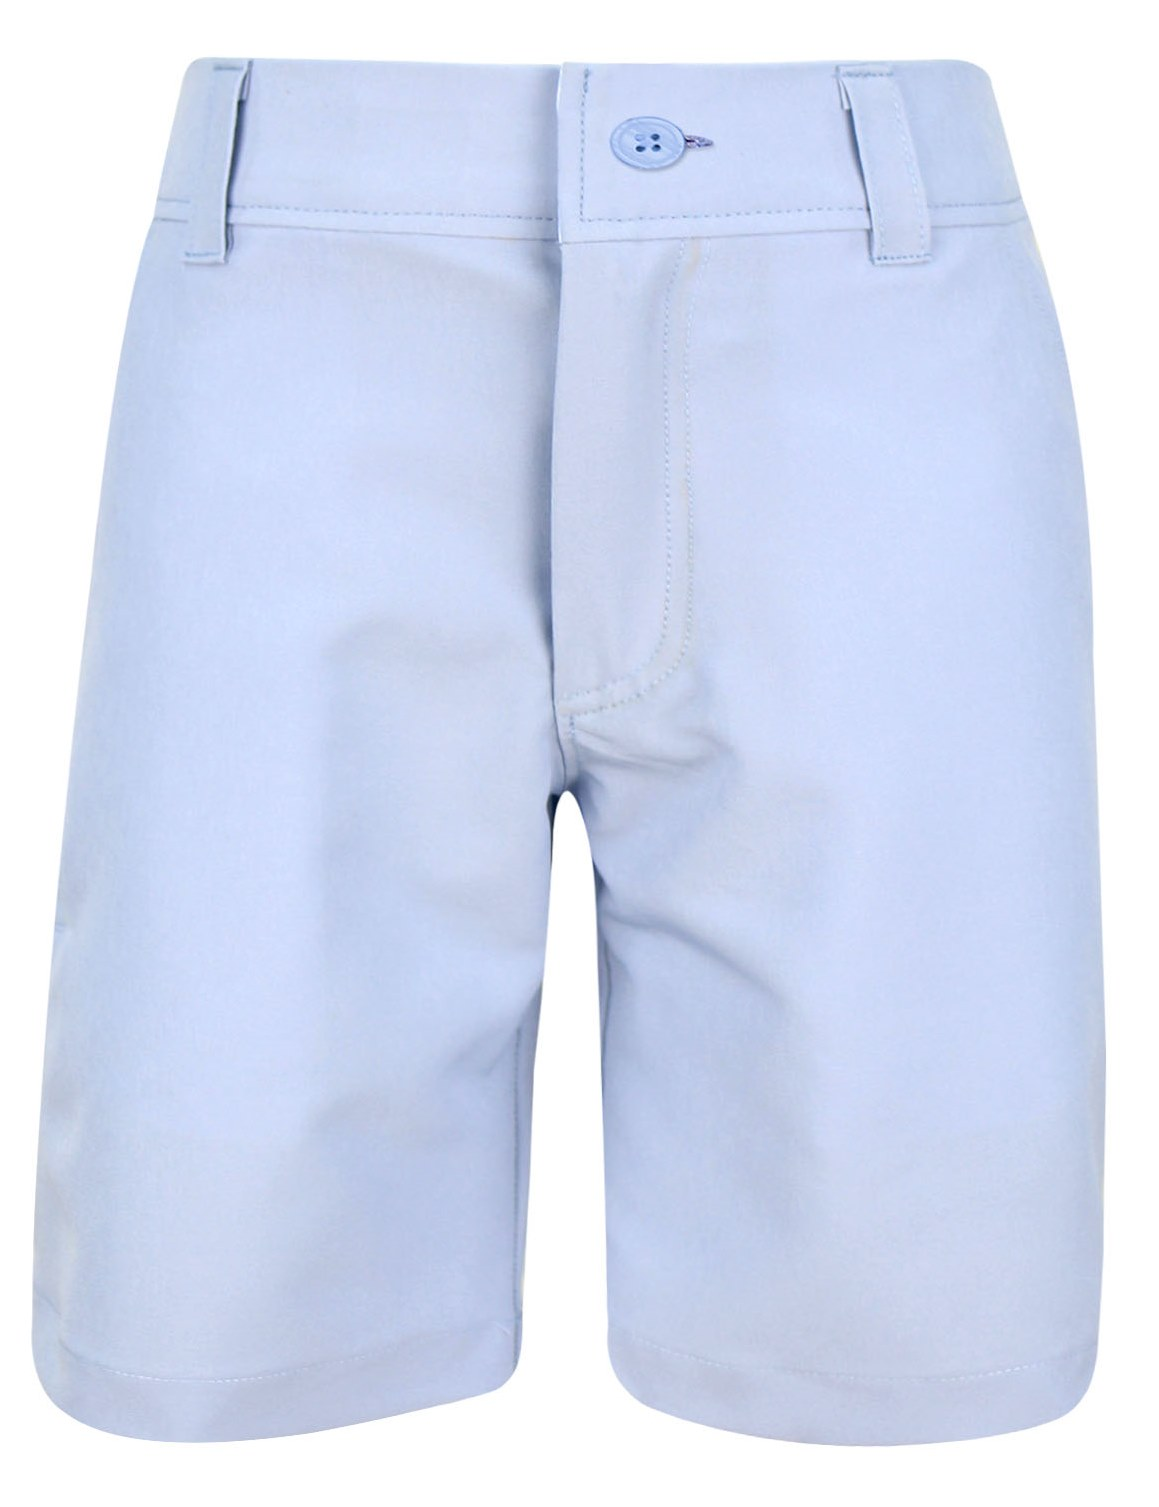 Will Boy's Golf and Tennis Shorts Blue Solid